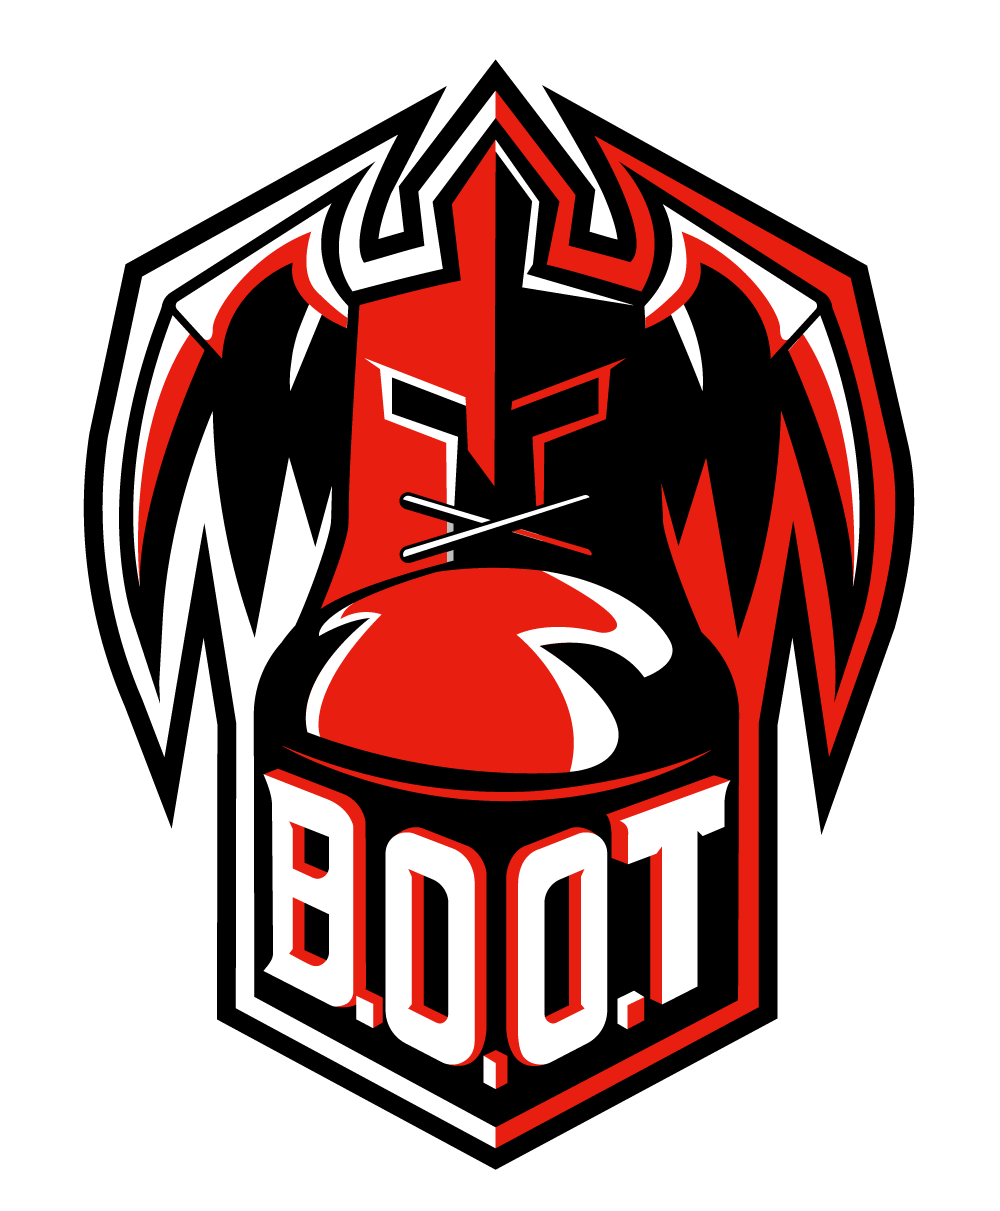 BOOT-DREAMSCAPE logo